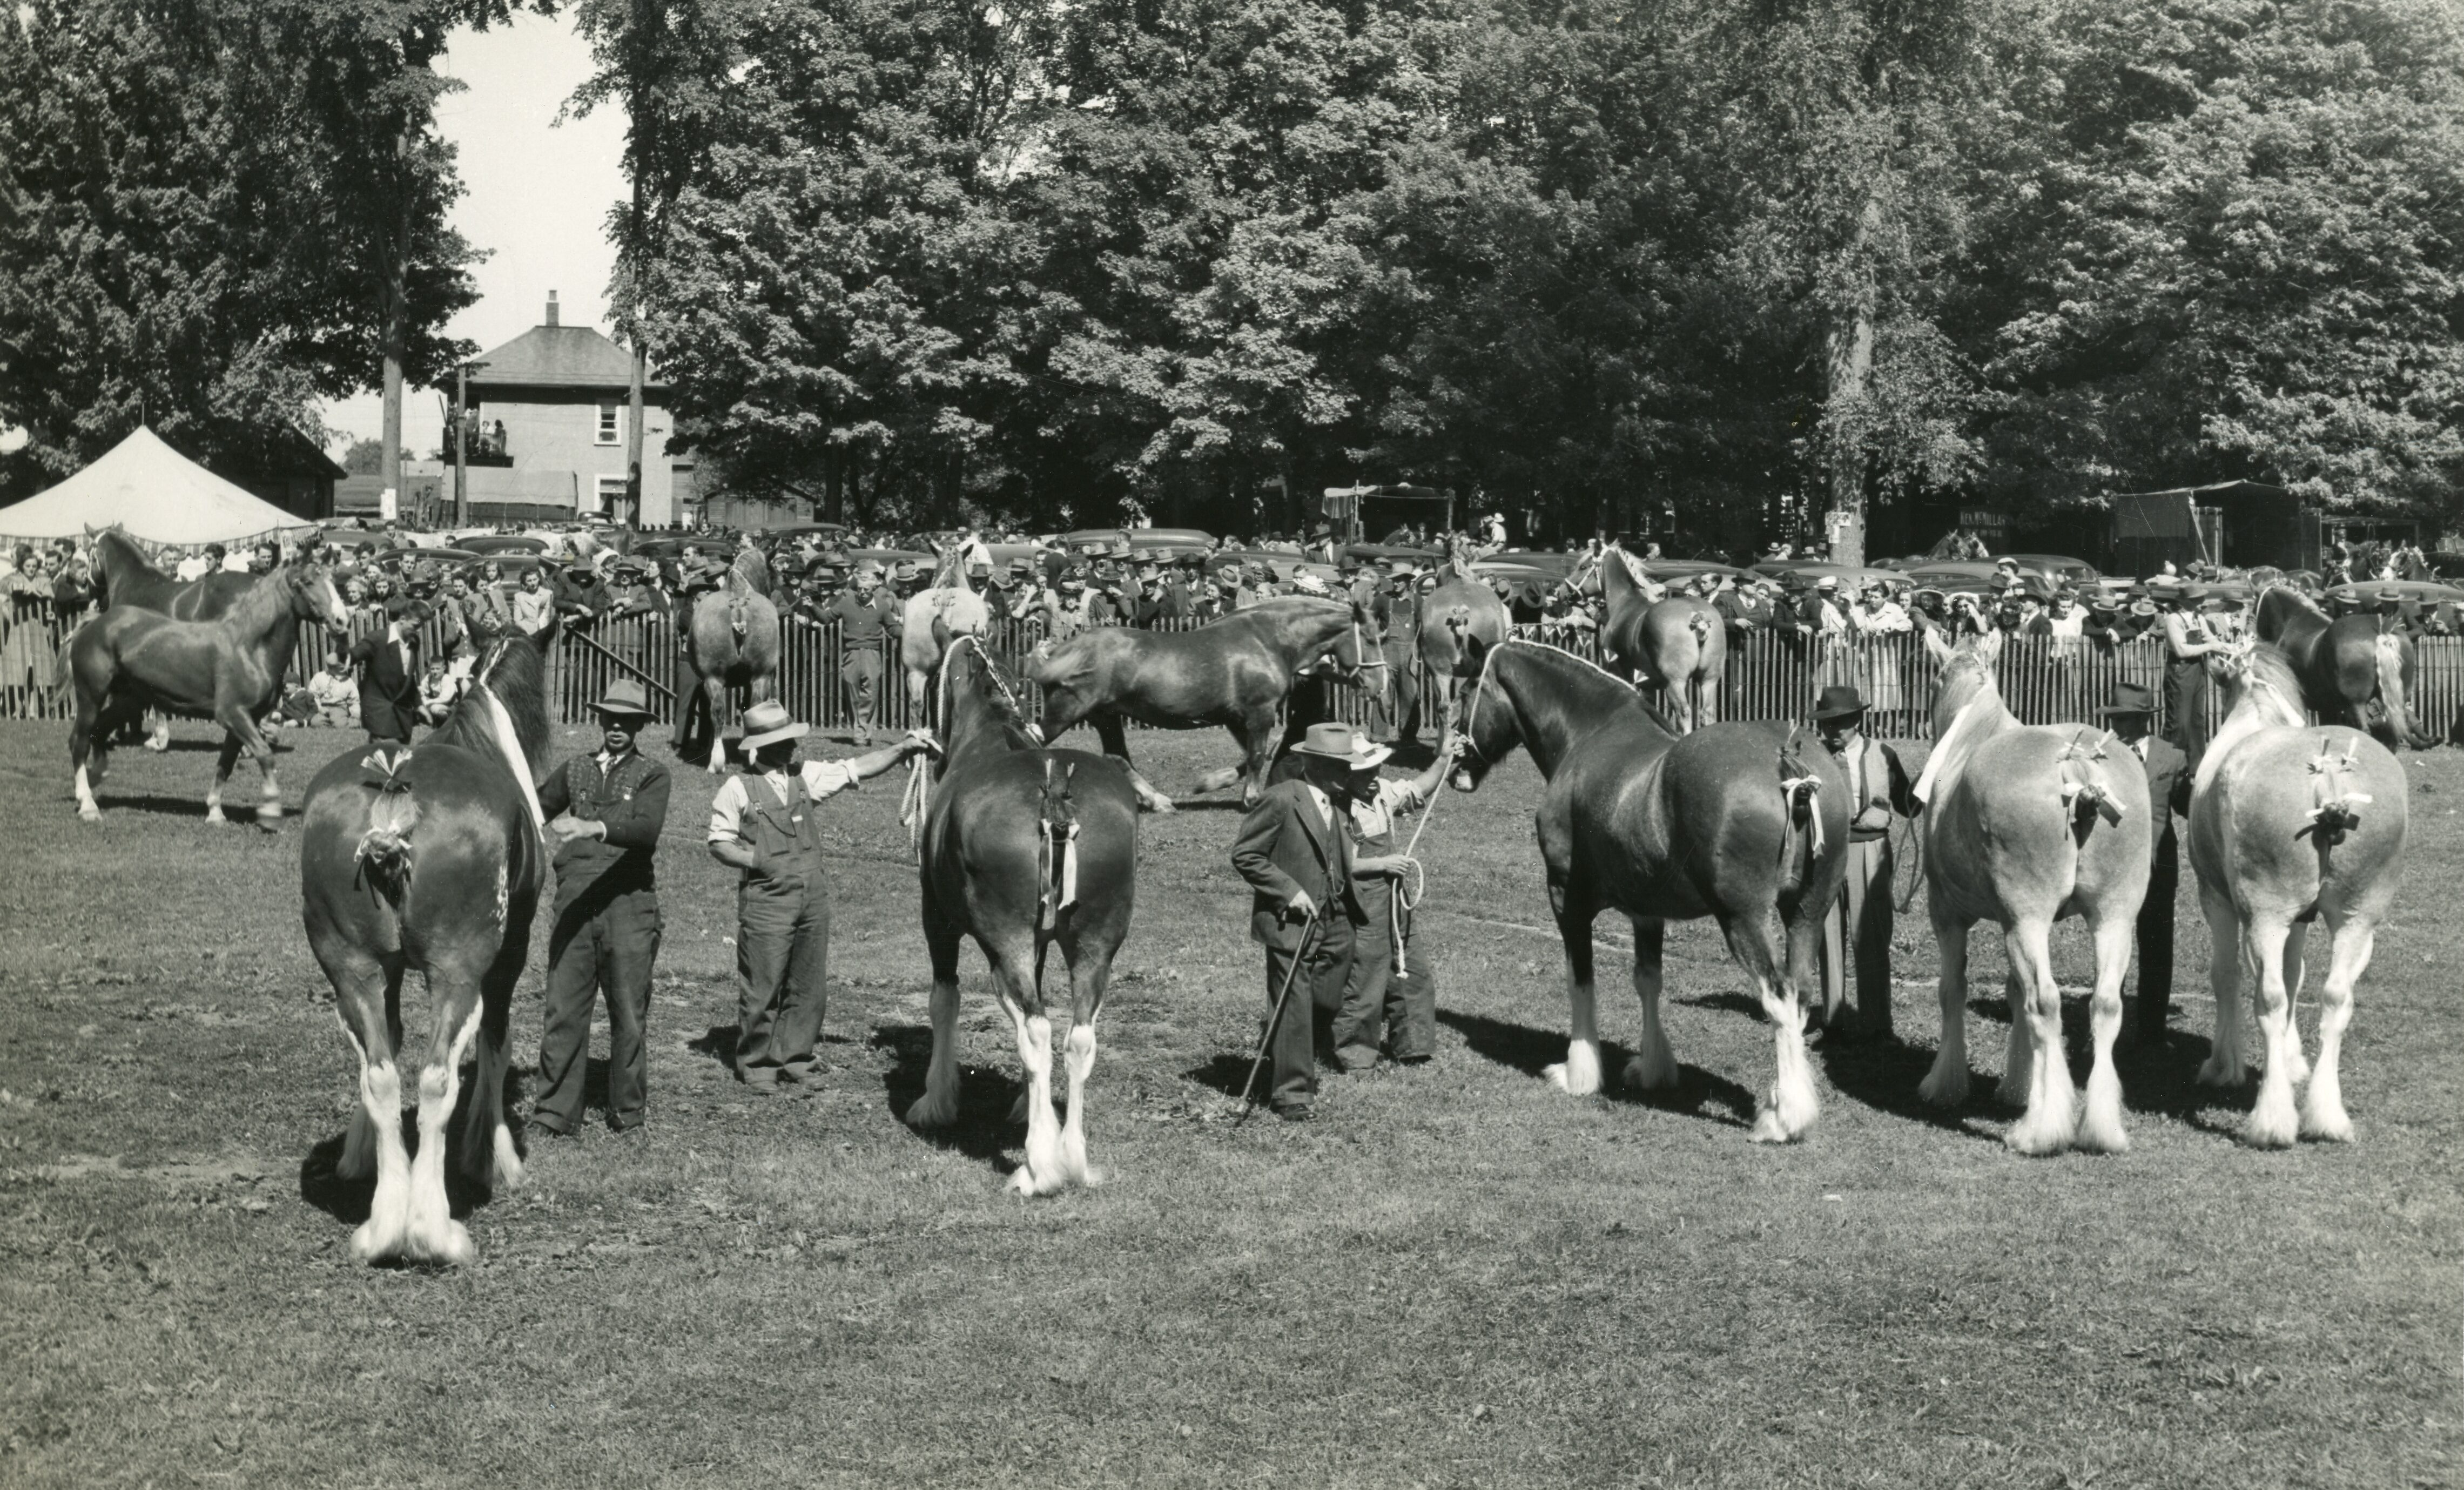 A black and white photograph of show horses facing away, with tails tied up, being handled in a treed park.